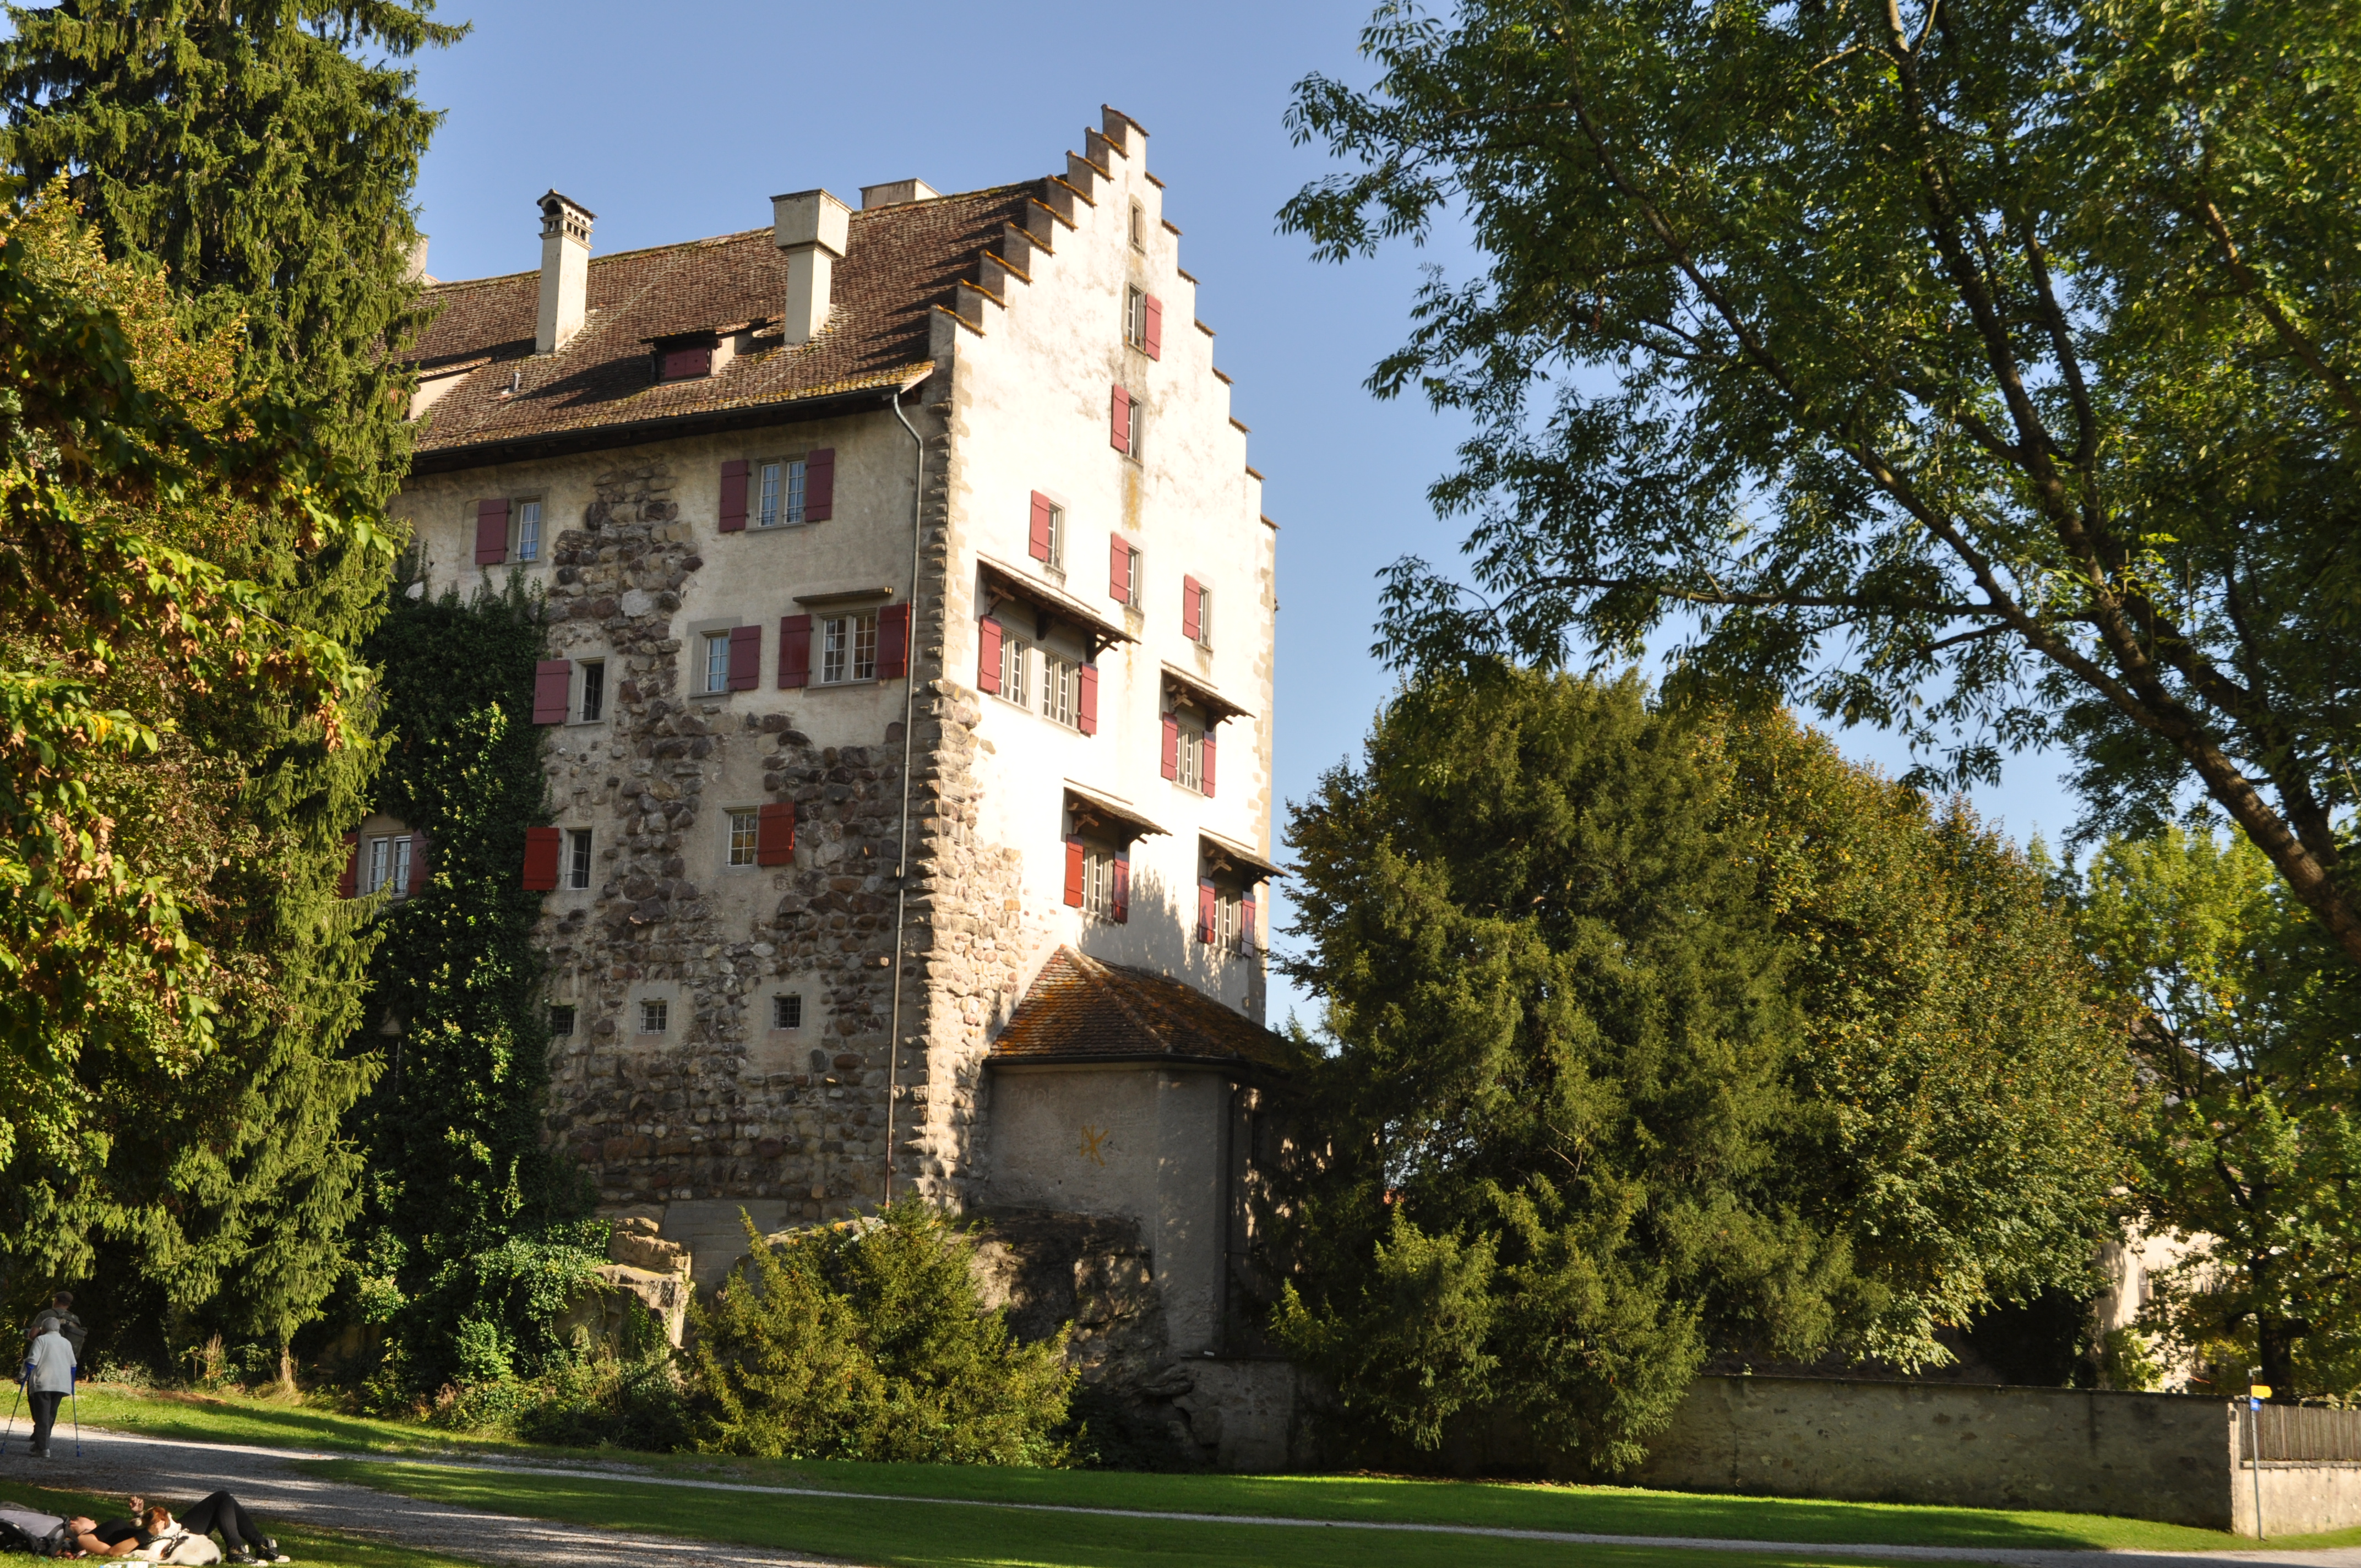 Apartment for rent - Mllerwis 11, 8606 Greifensee - 4.5 rooms